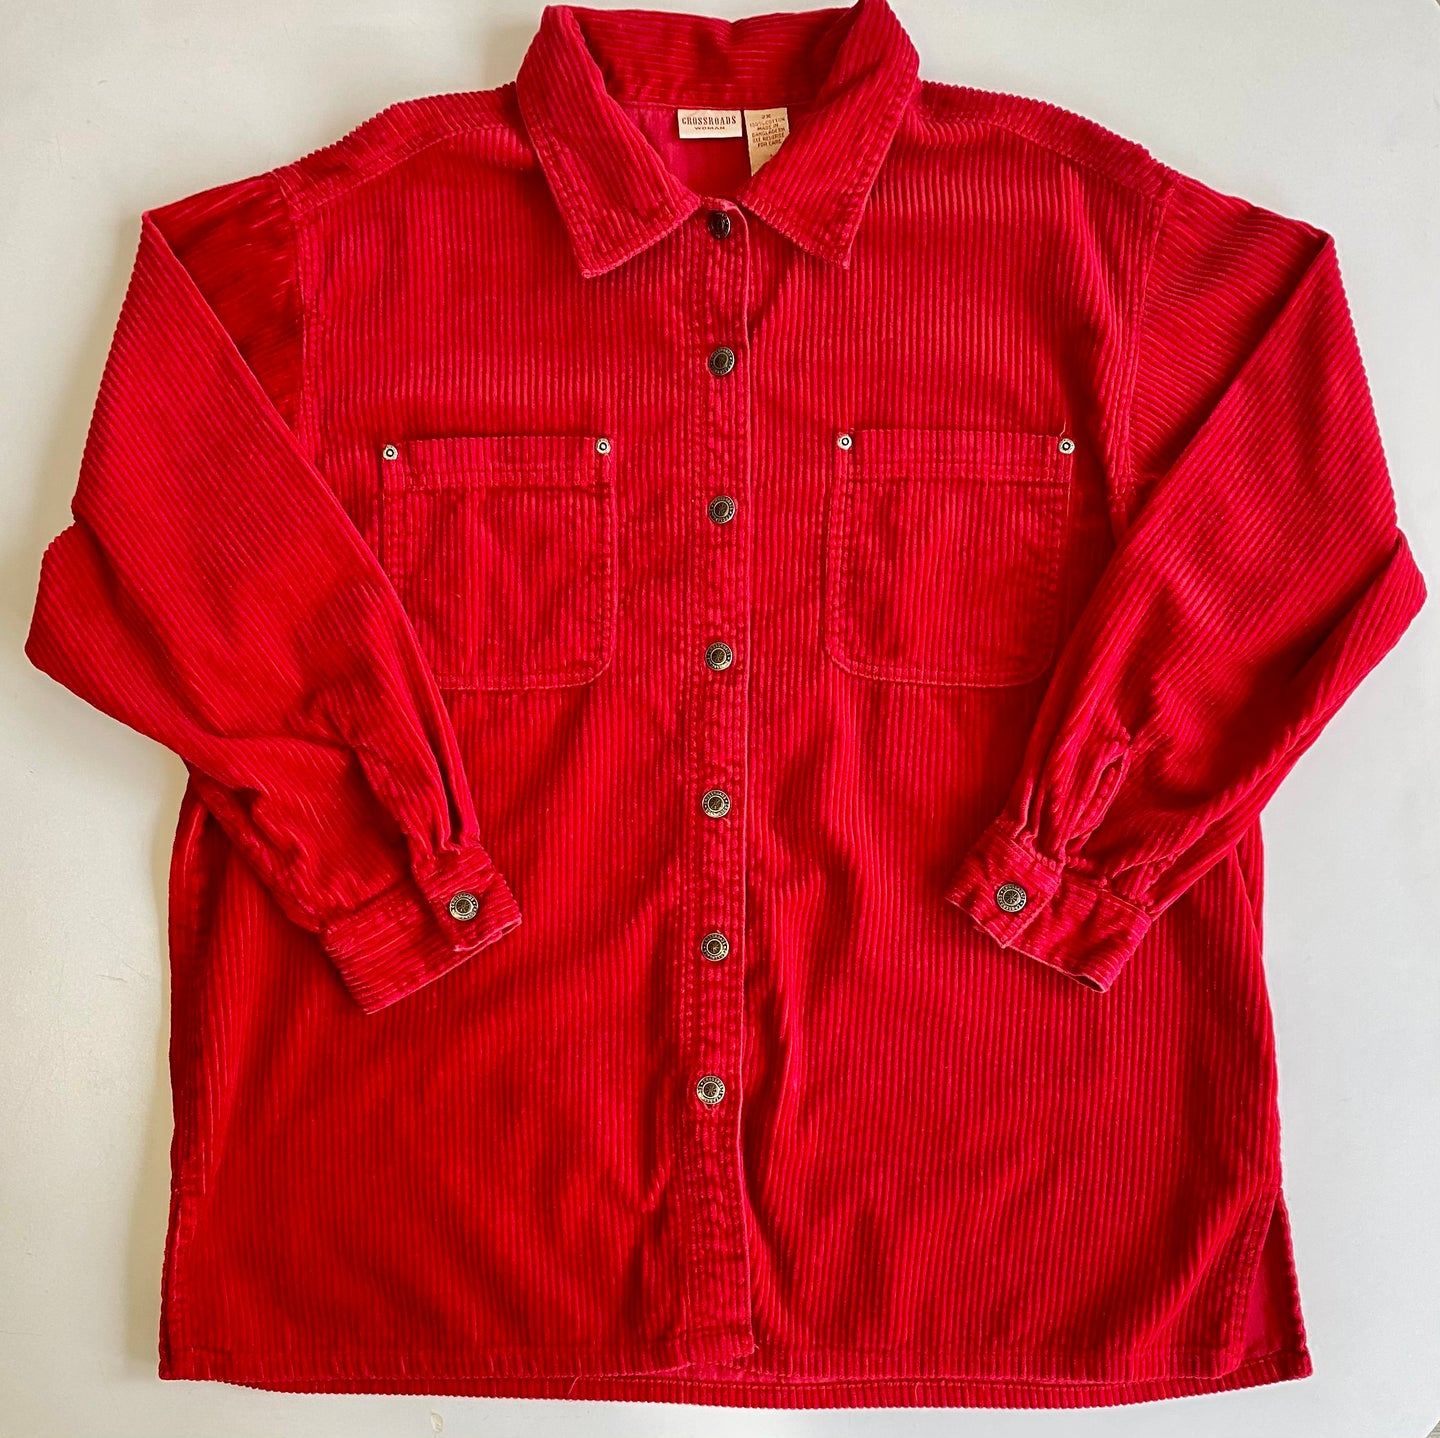 Cherry red cord shirt